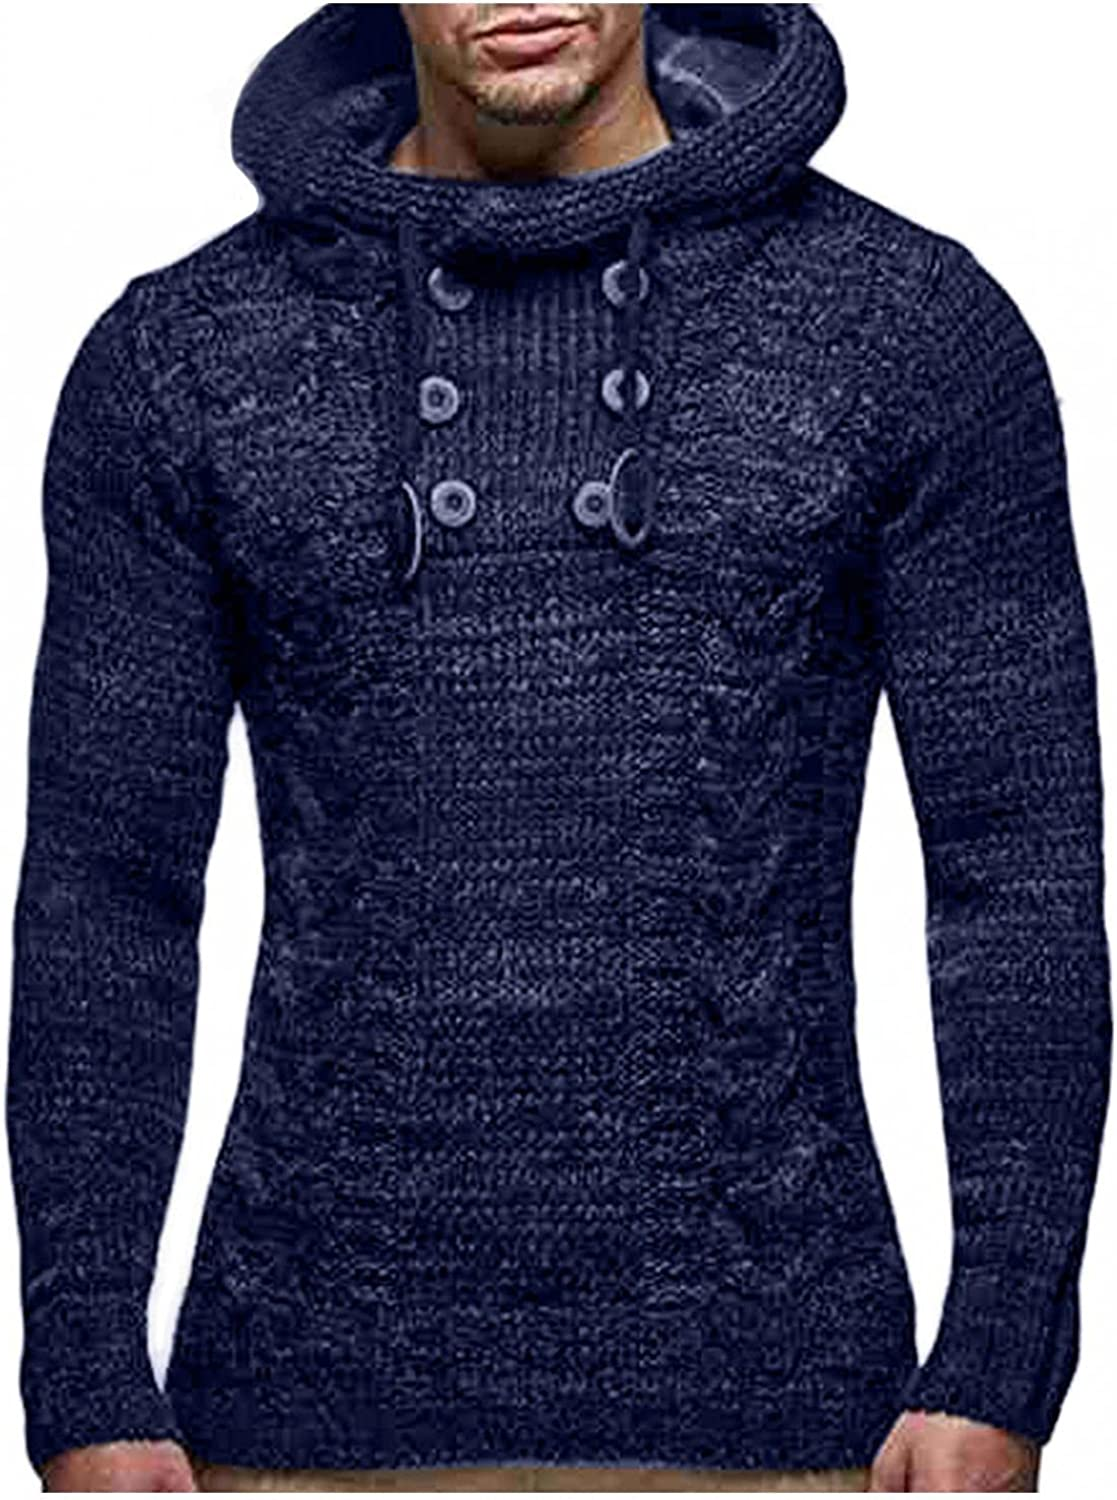 WUAI-Men Knitted Jacket Turtleneck Cardigan Winter Warm Pullover Hoodies Casual Chunky Knitted Sweaters Jumper Tops